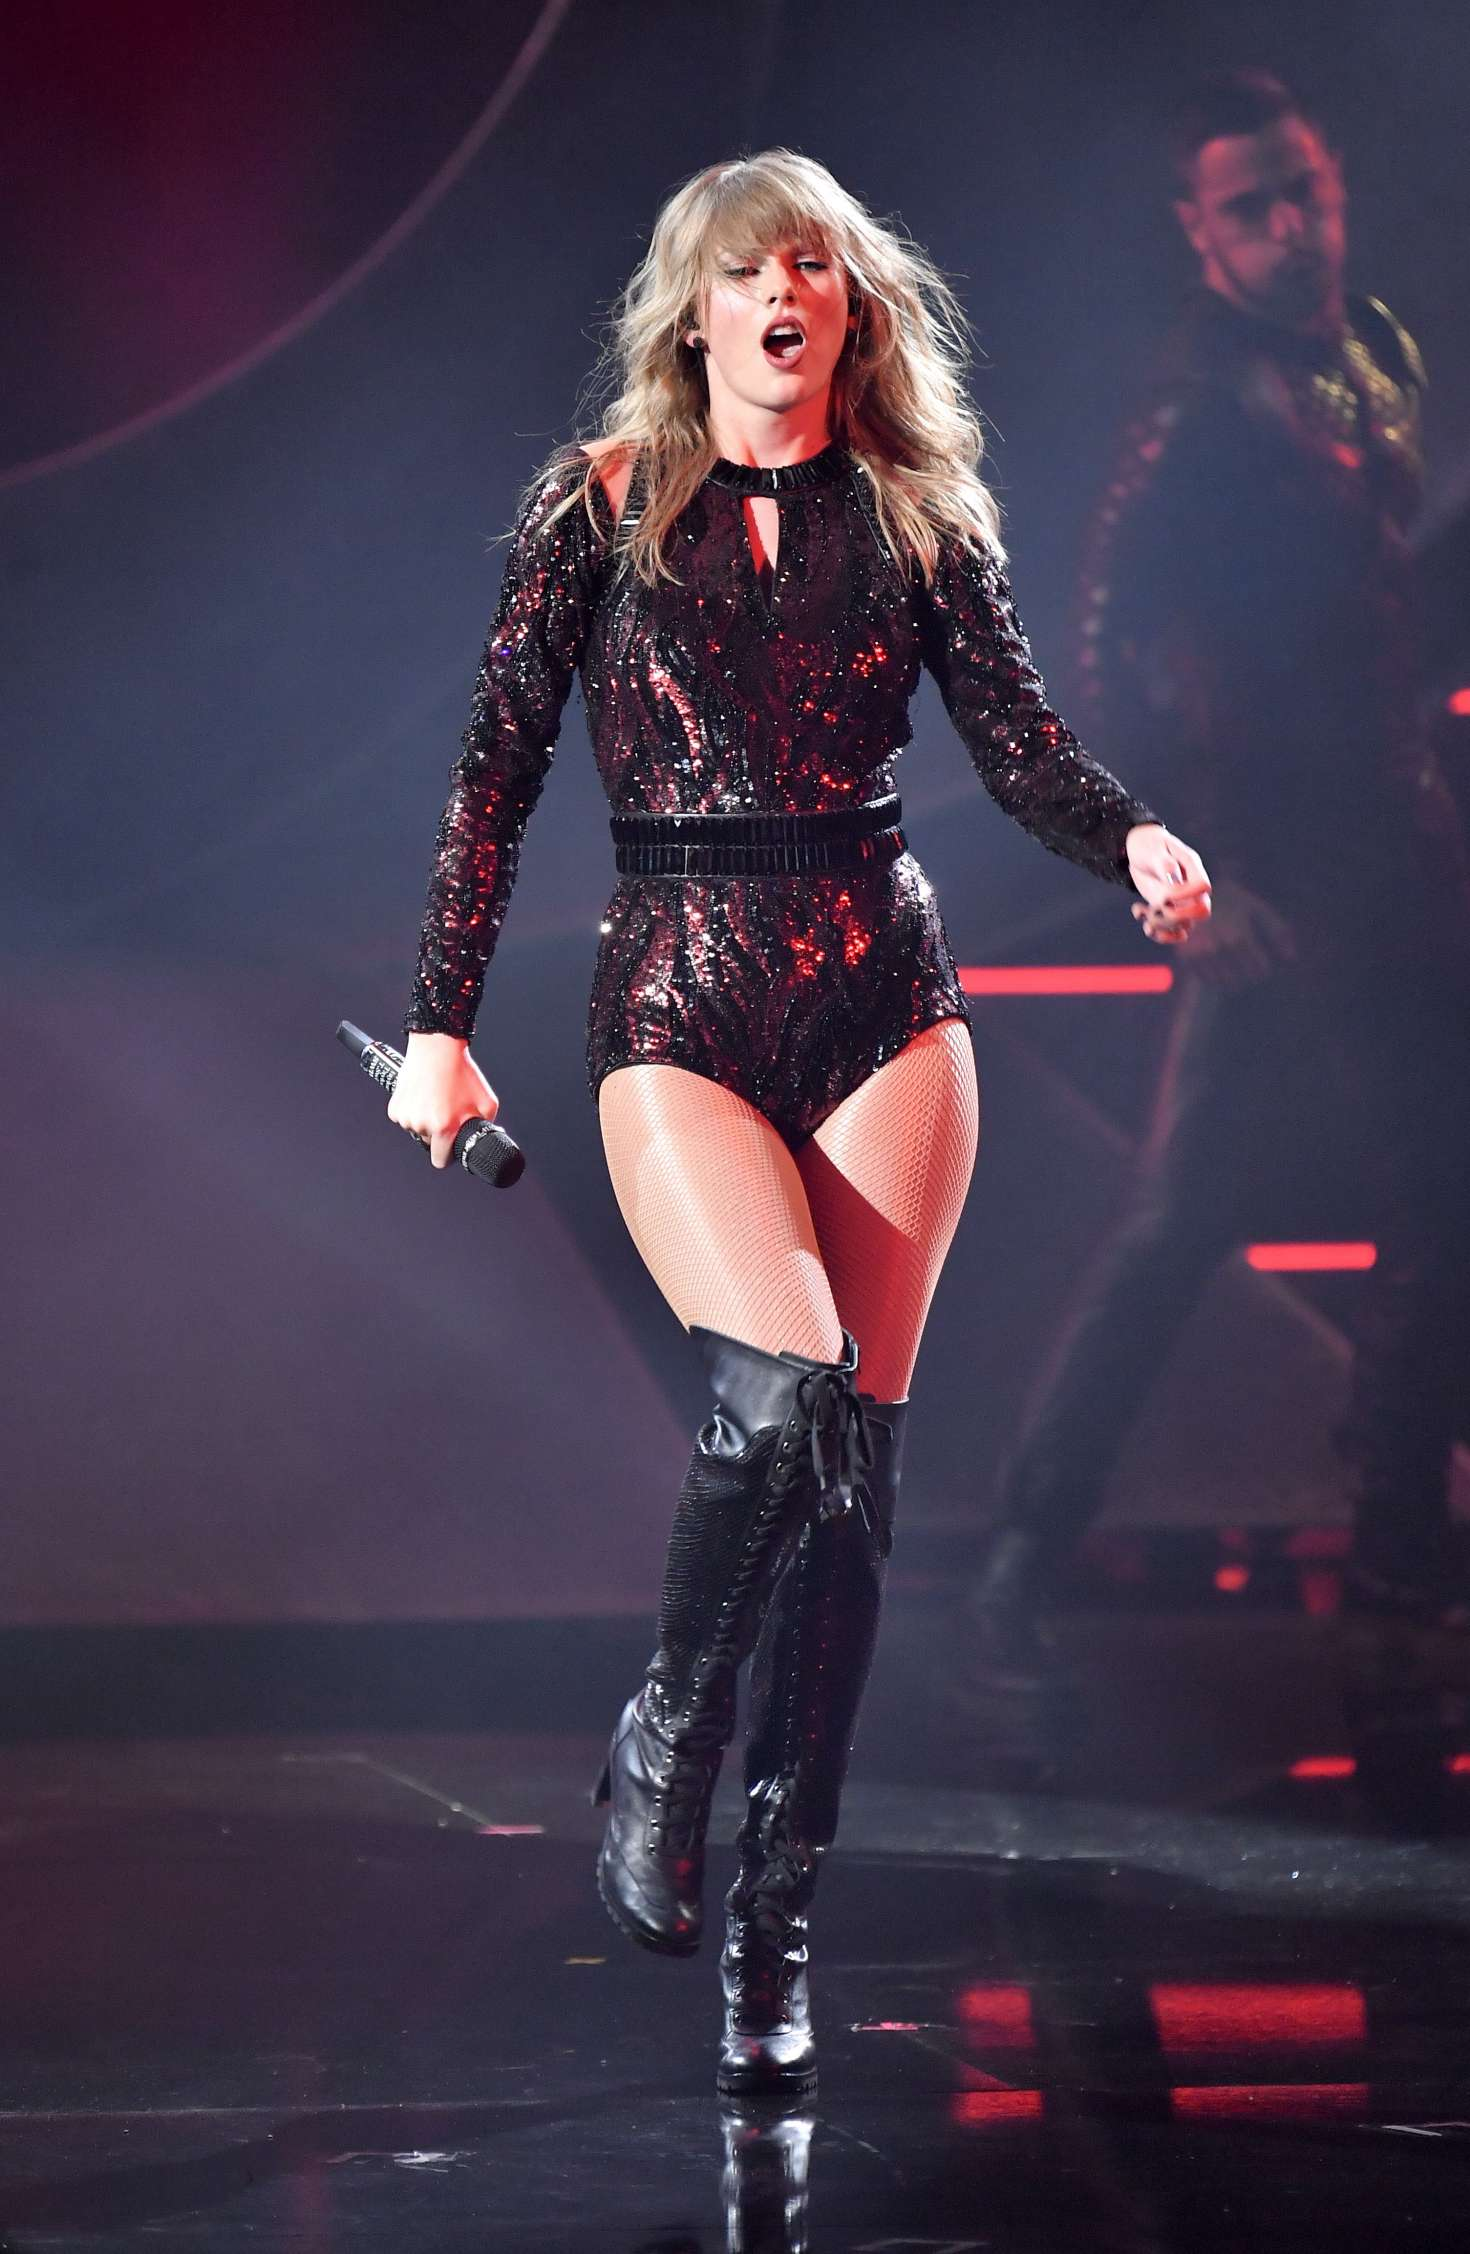 Taylor Swift Performs At 2018 American Music Awards 18 Gotceleb